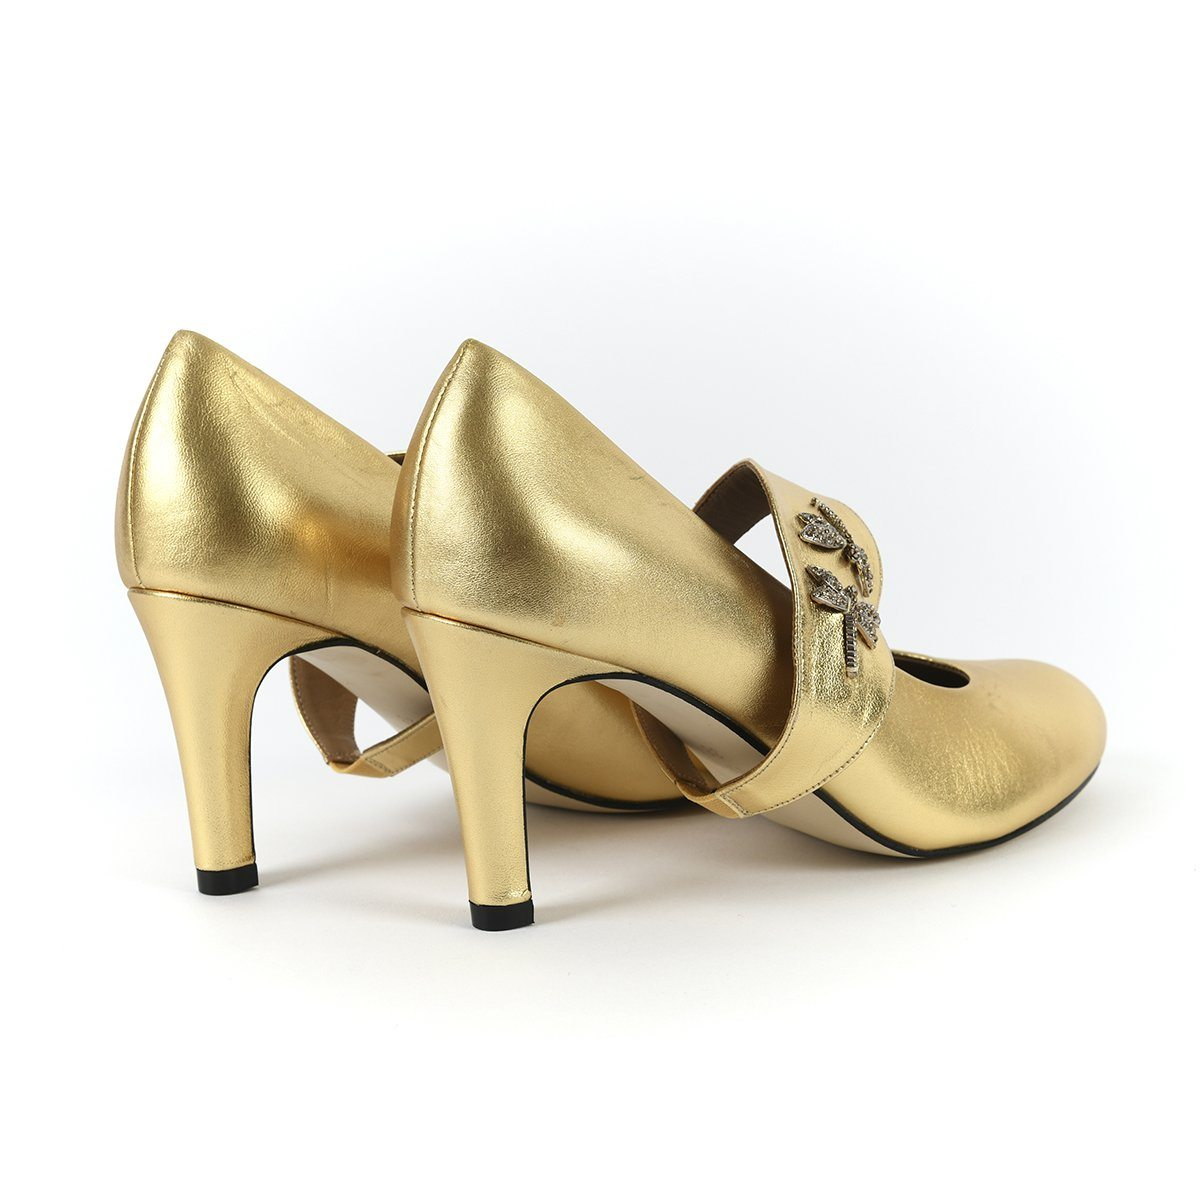 She's Unstoppable - 18 Hour Heels - Metallic Gold - Shoes by Shaherazad